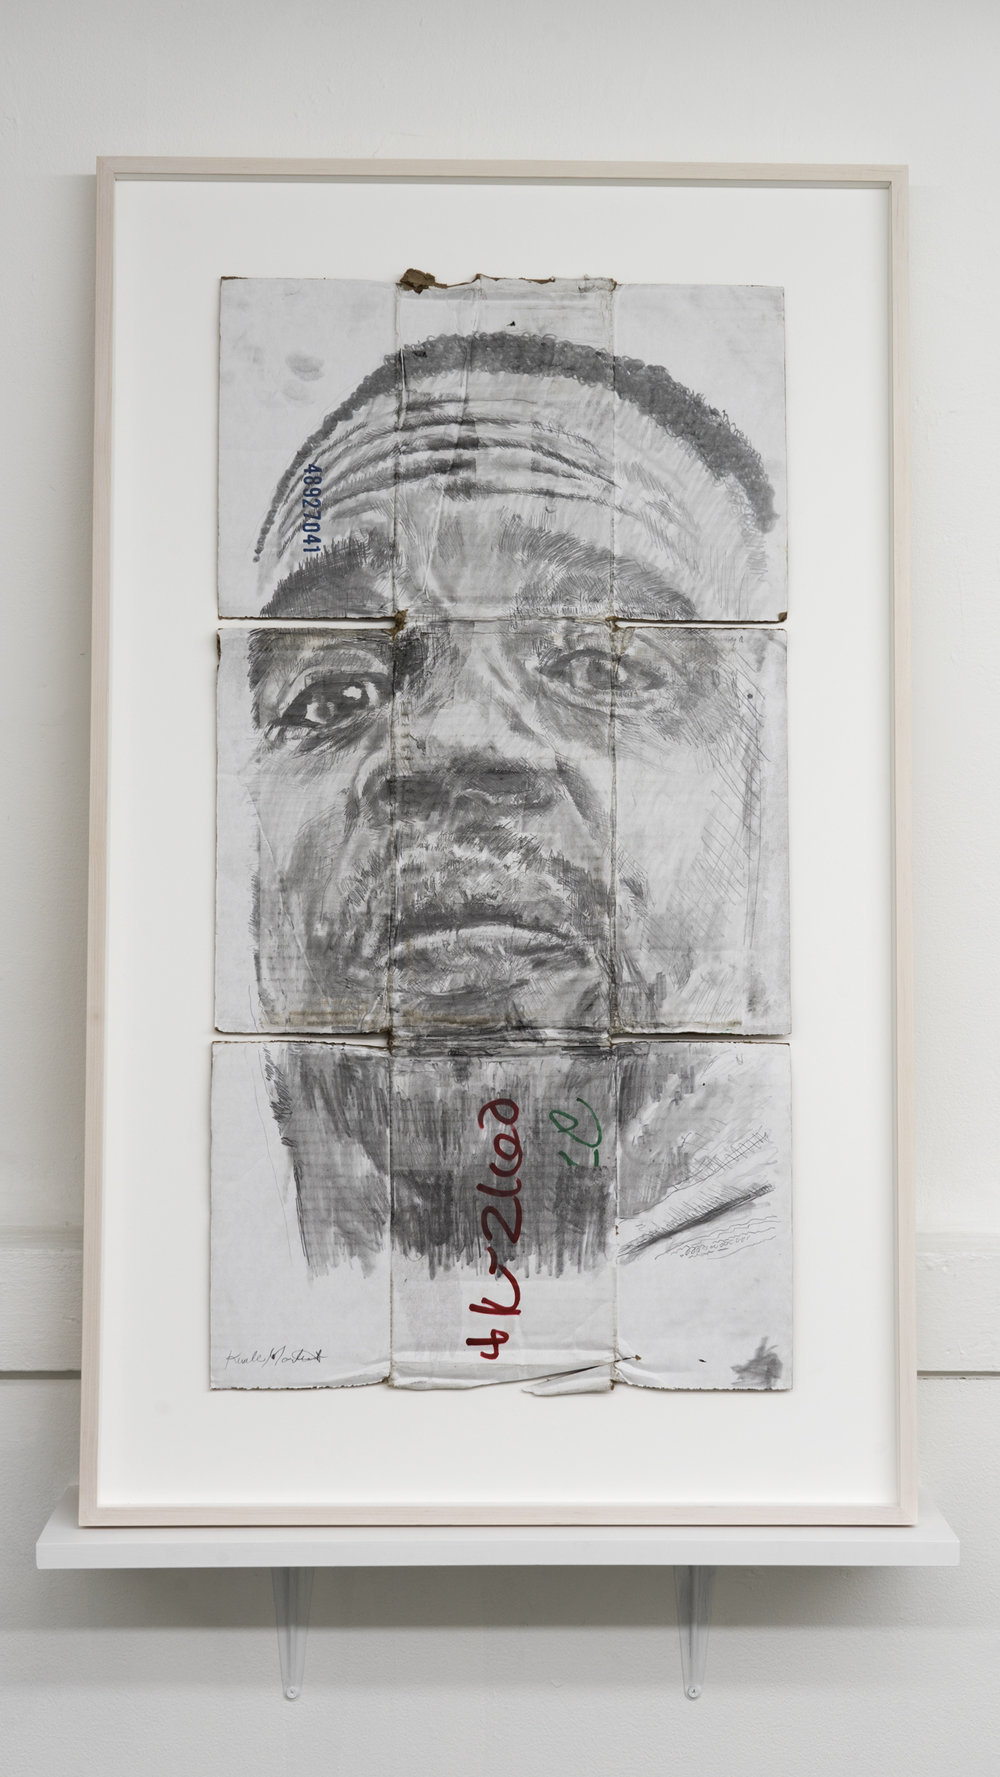 Kunle F. Martins,  Self Portrait,  2019, pencil on found white cardboard box, 29 × 23 ½ inches